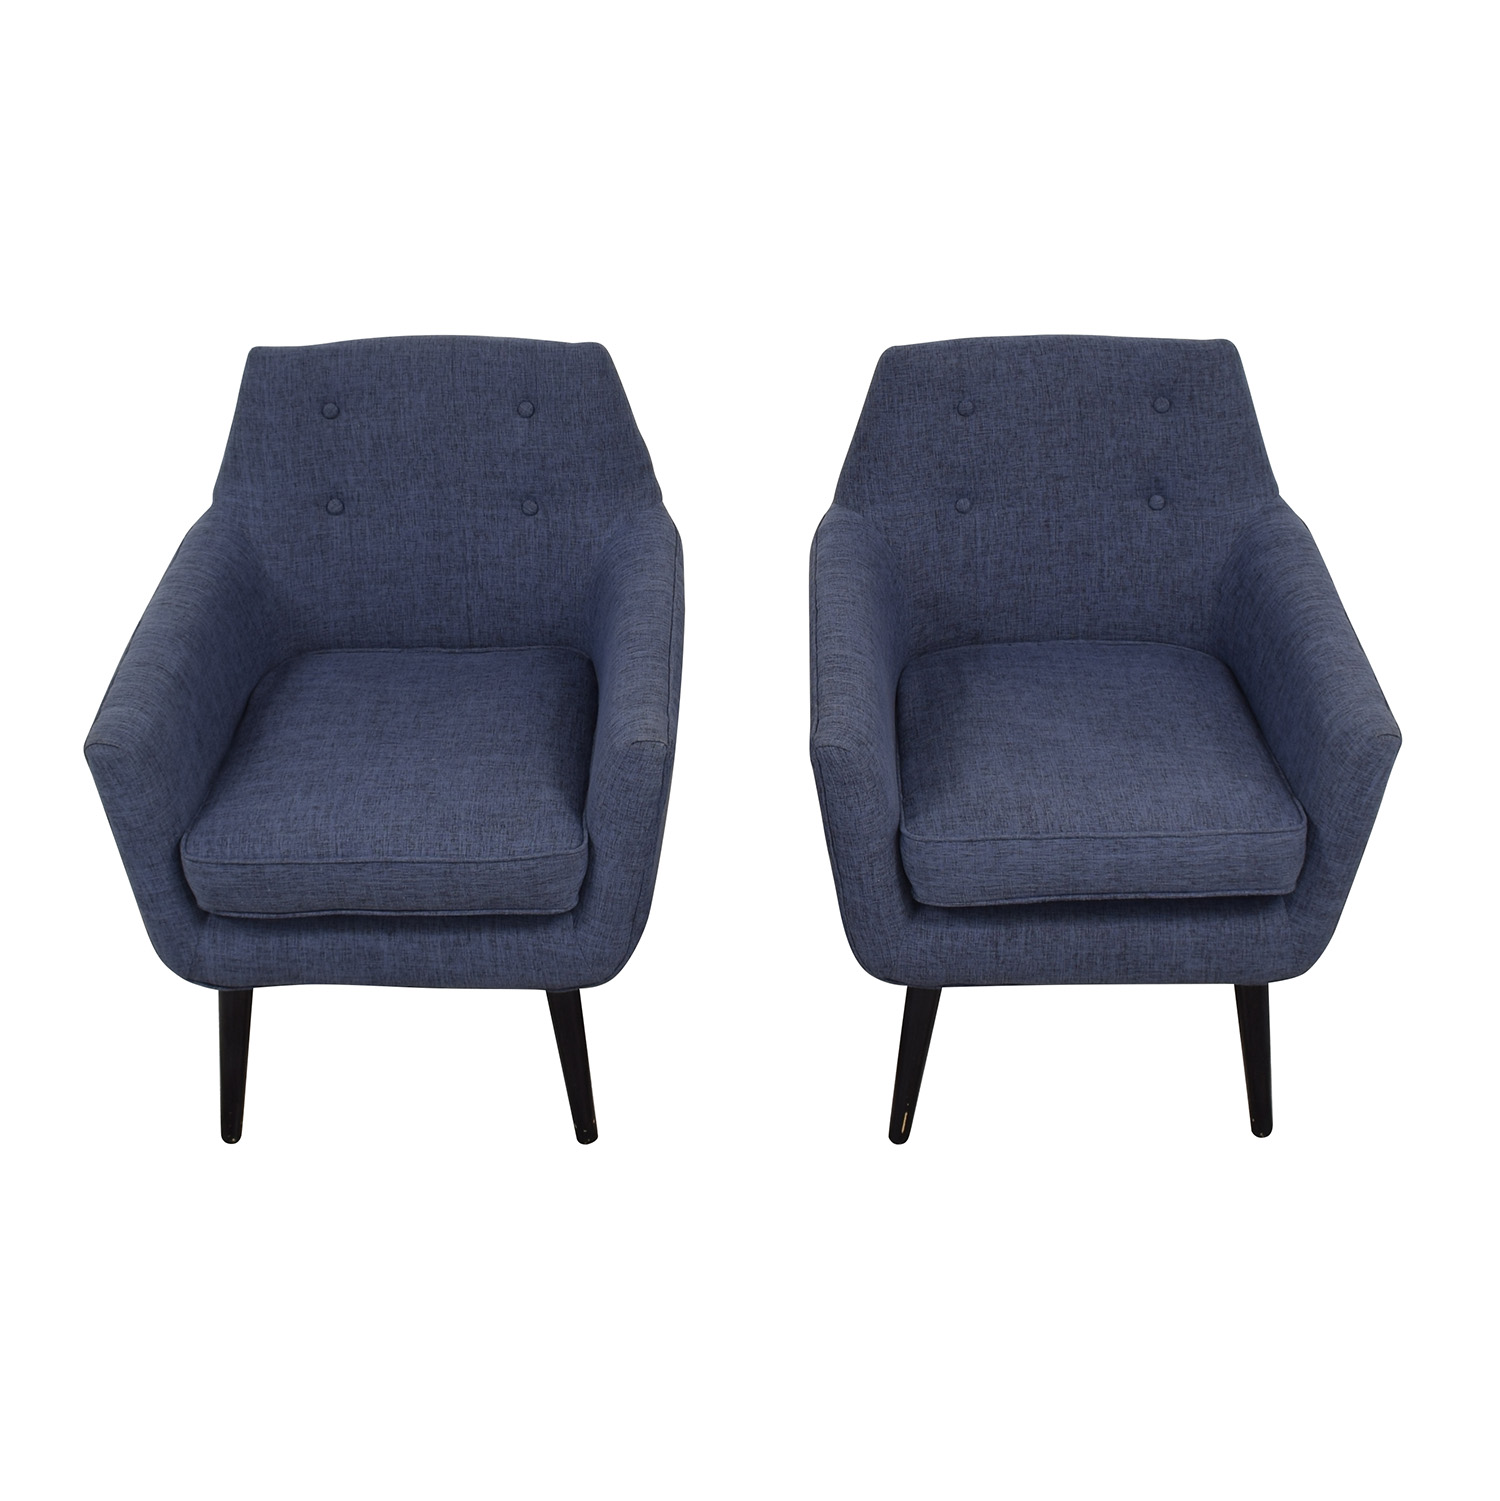 Tov TOV Furniture Clyde Linen Chairs for sale